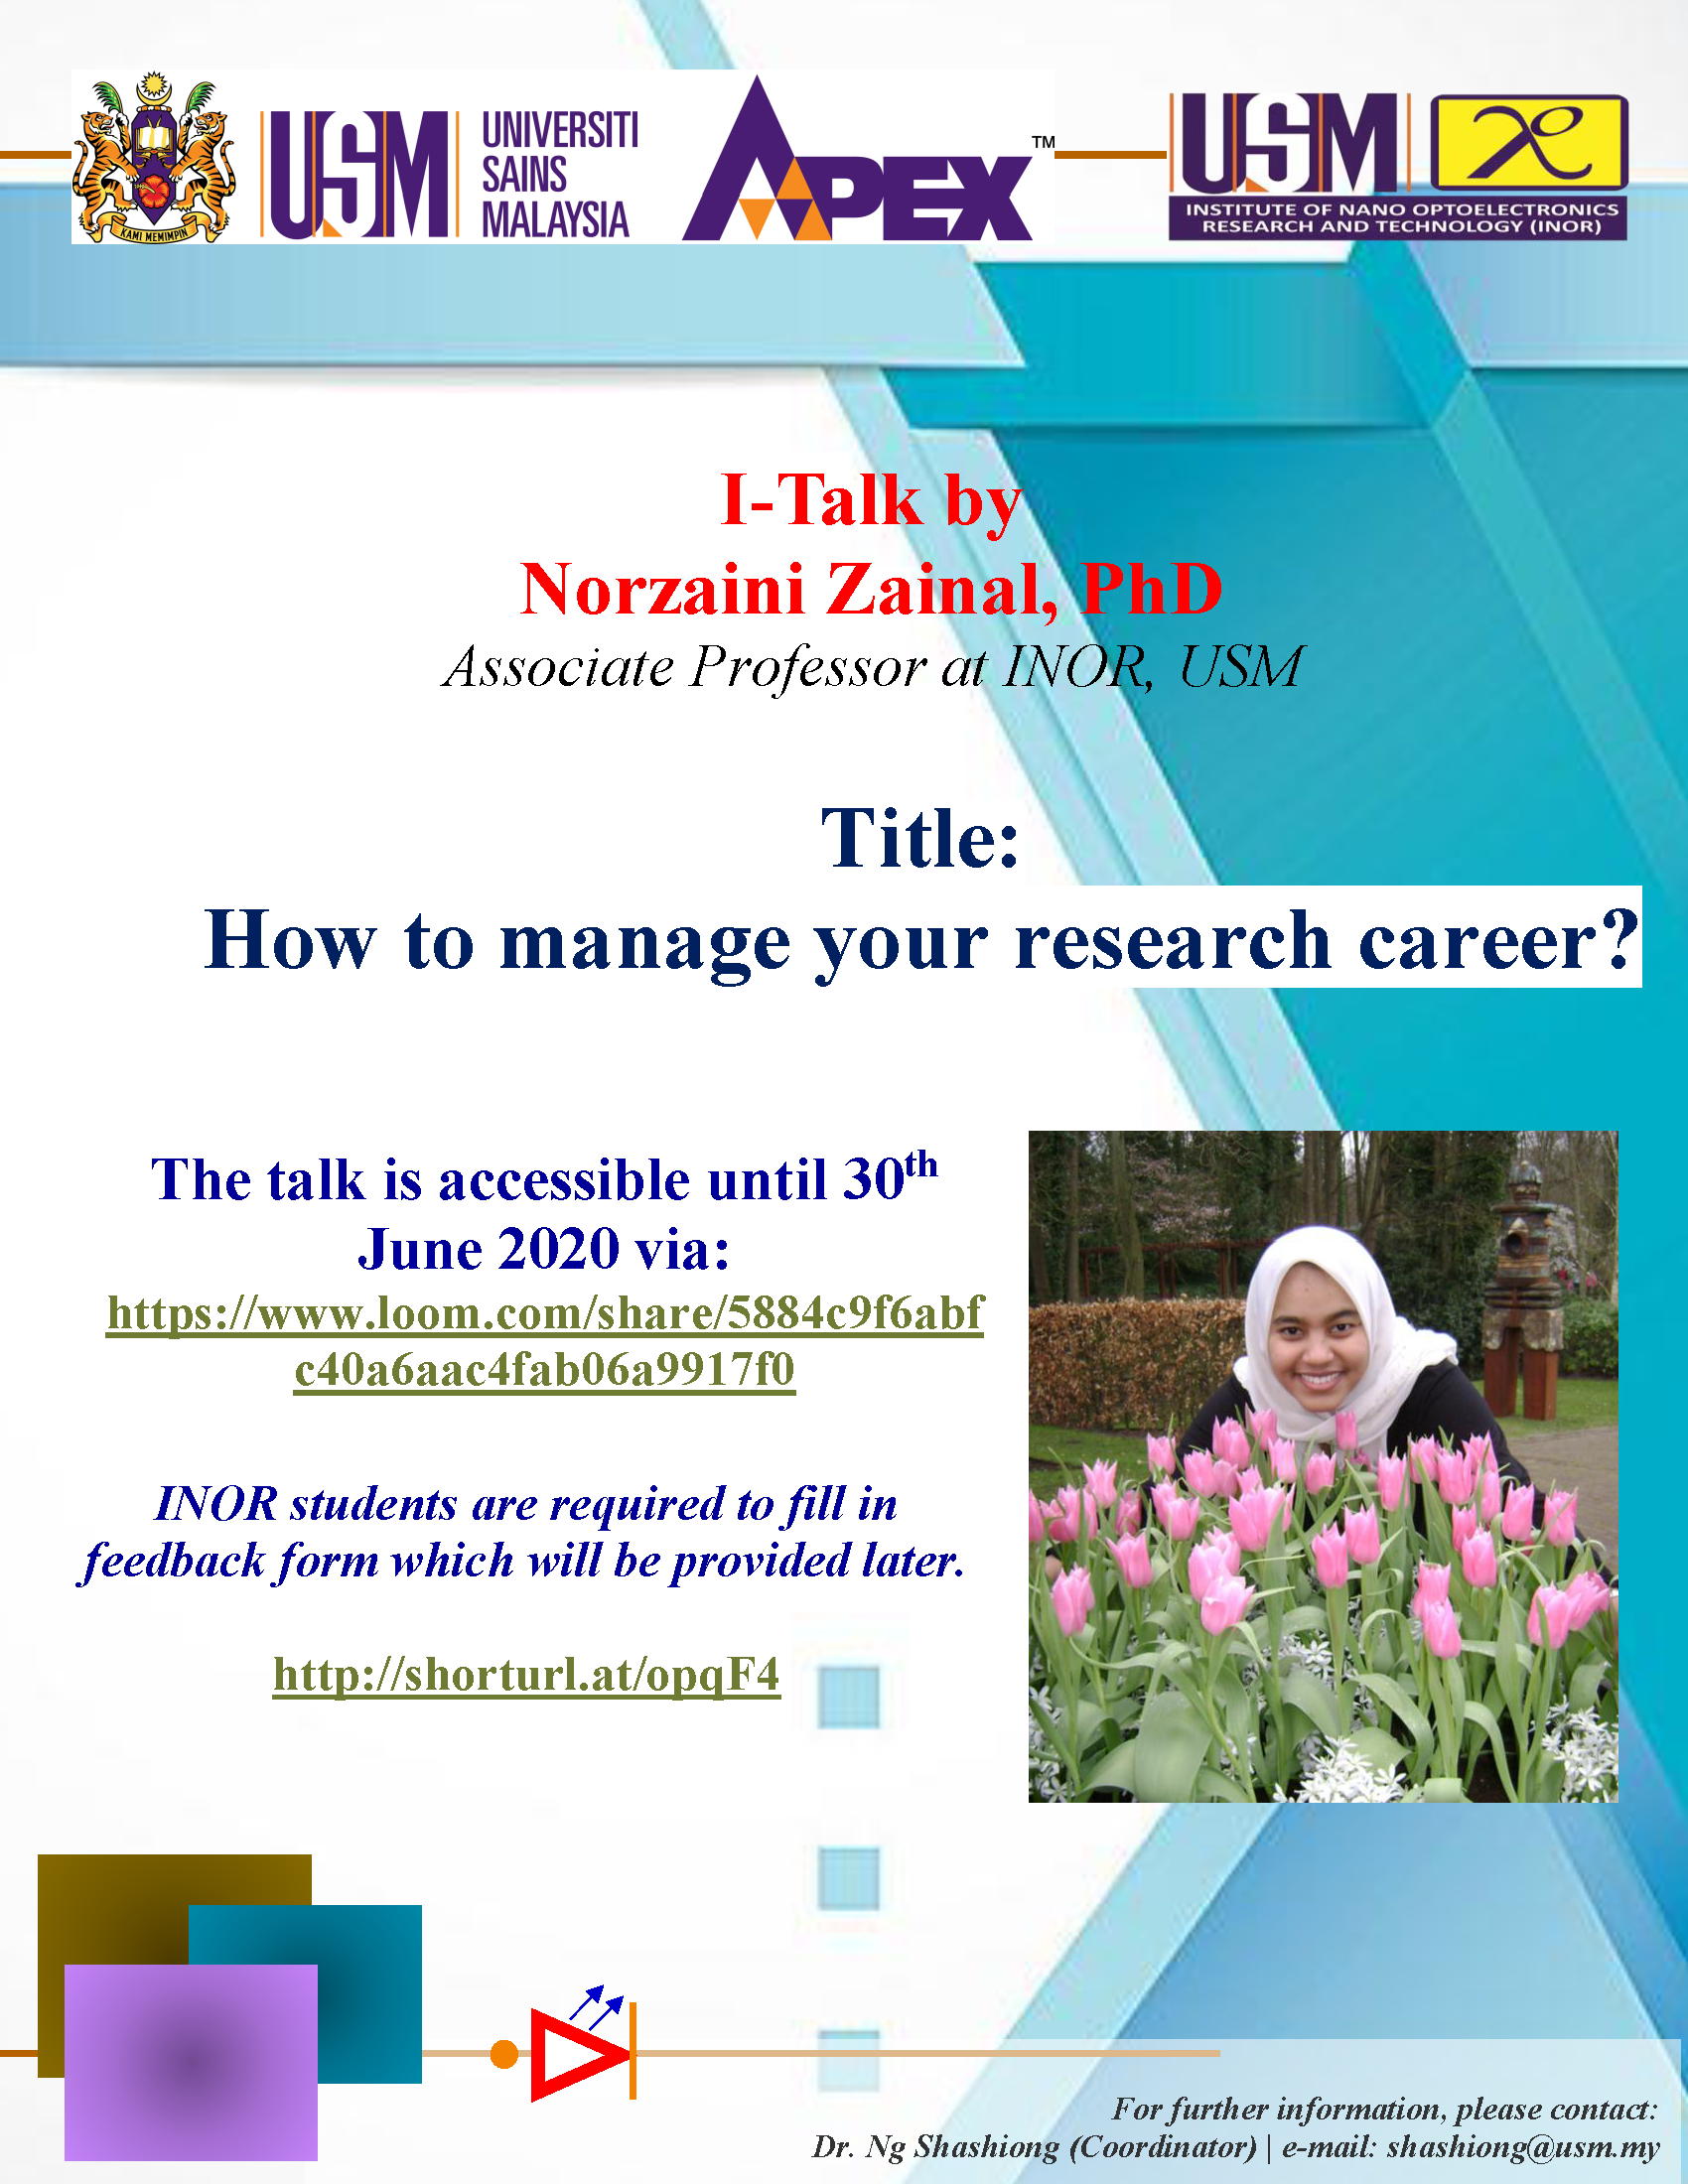 I-Talk: How to manage your research career?